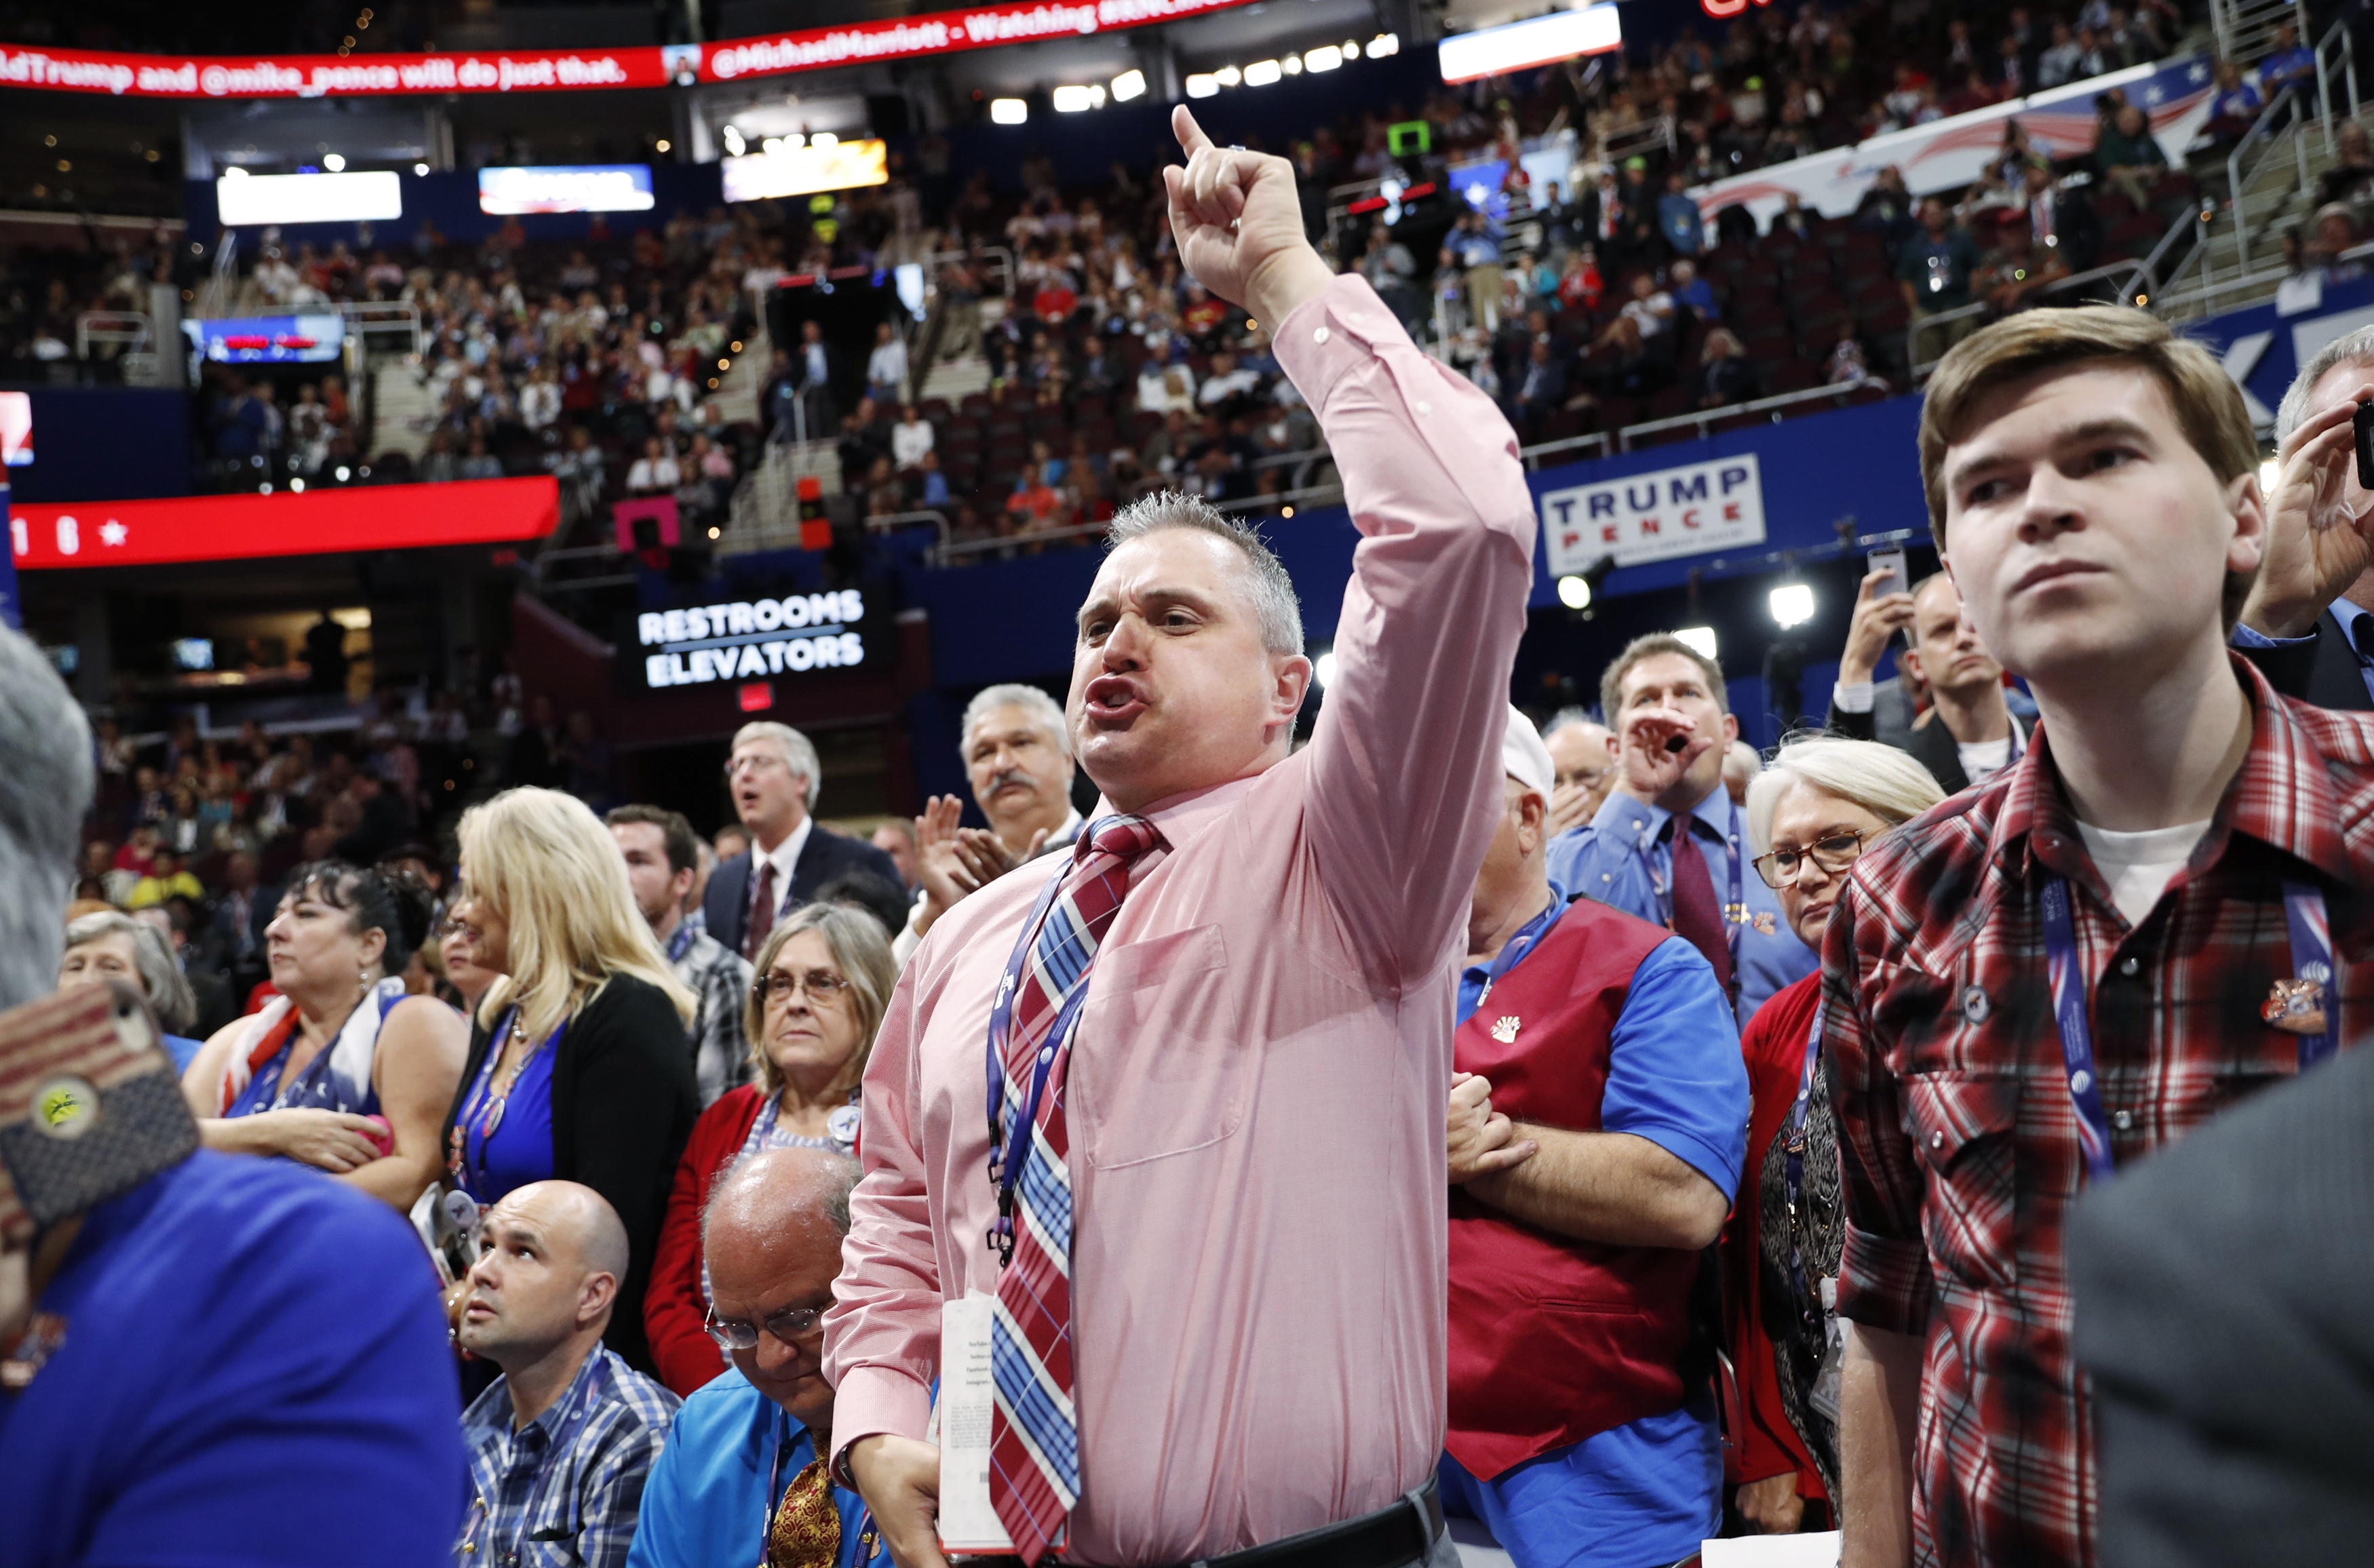 A Republican National Convention delegate screams as the Chair announces that the convention will not hold a roll-call vote at the Republican National Convention in Cleveland